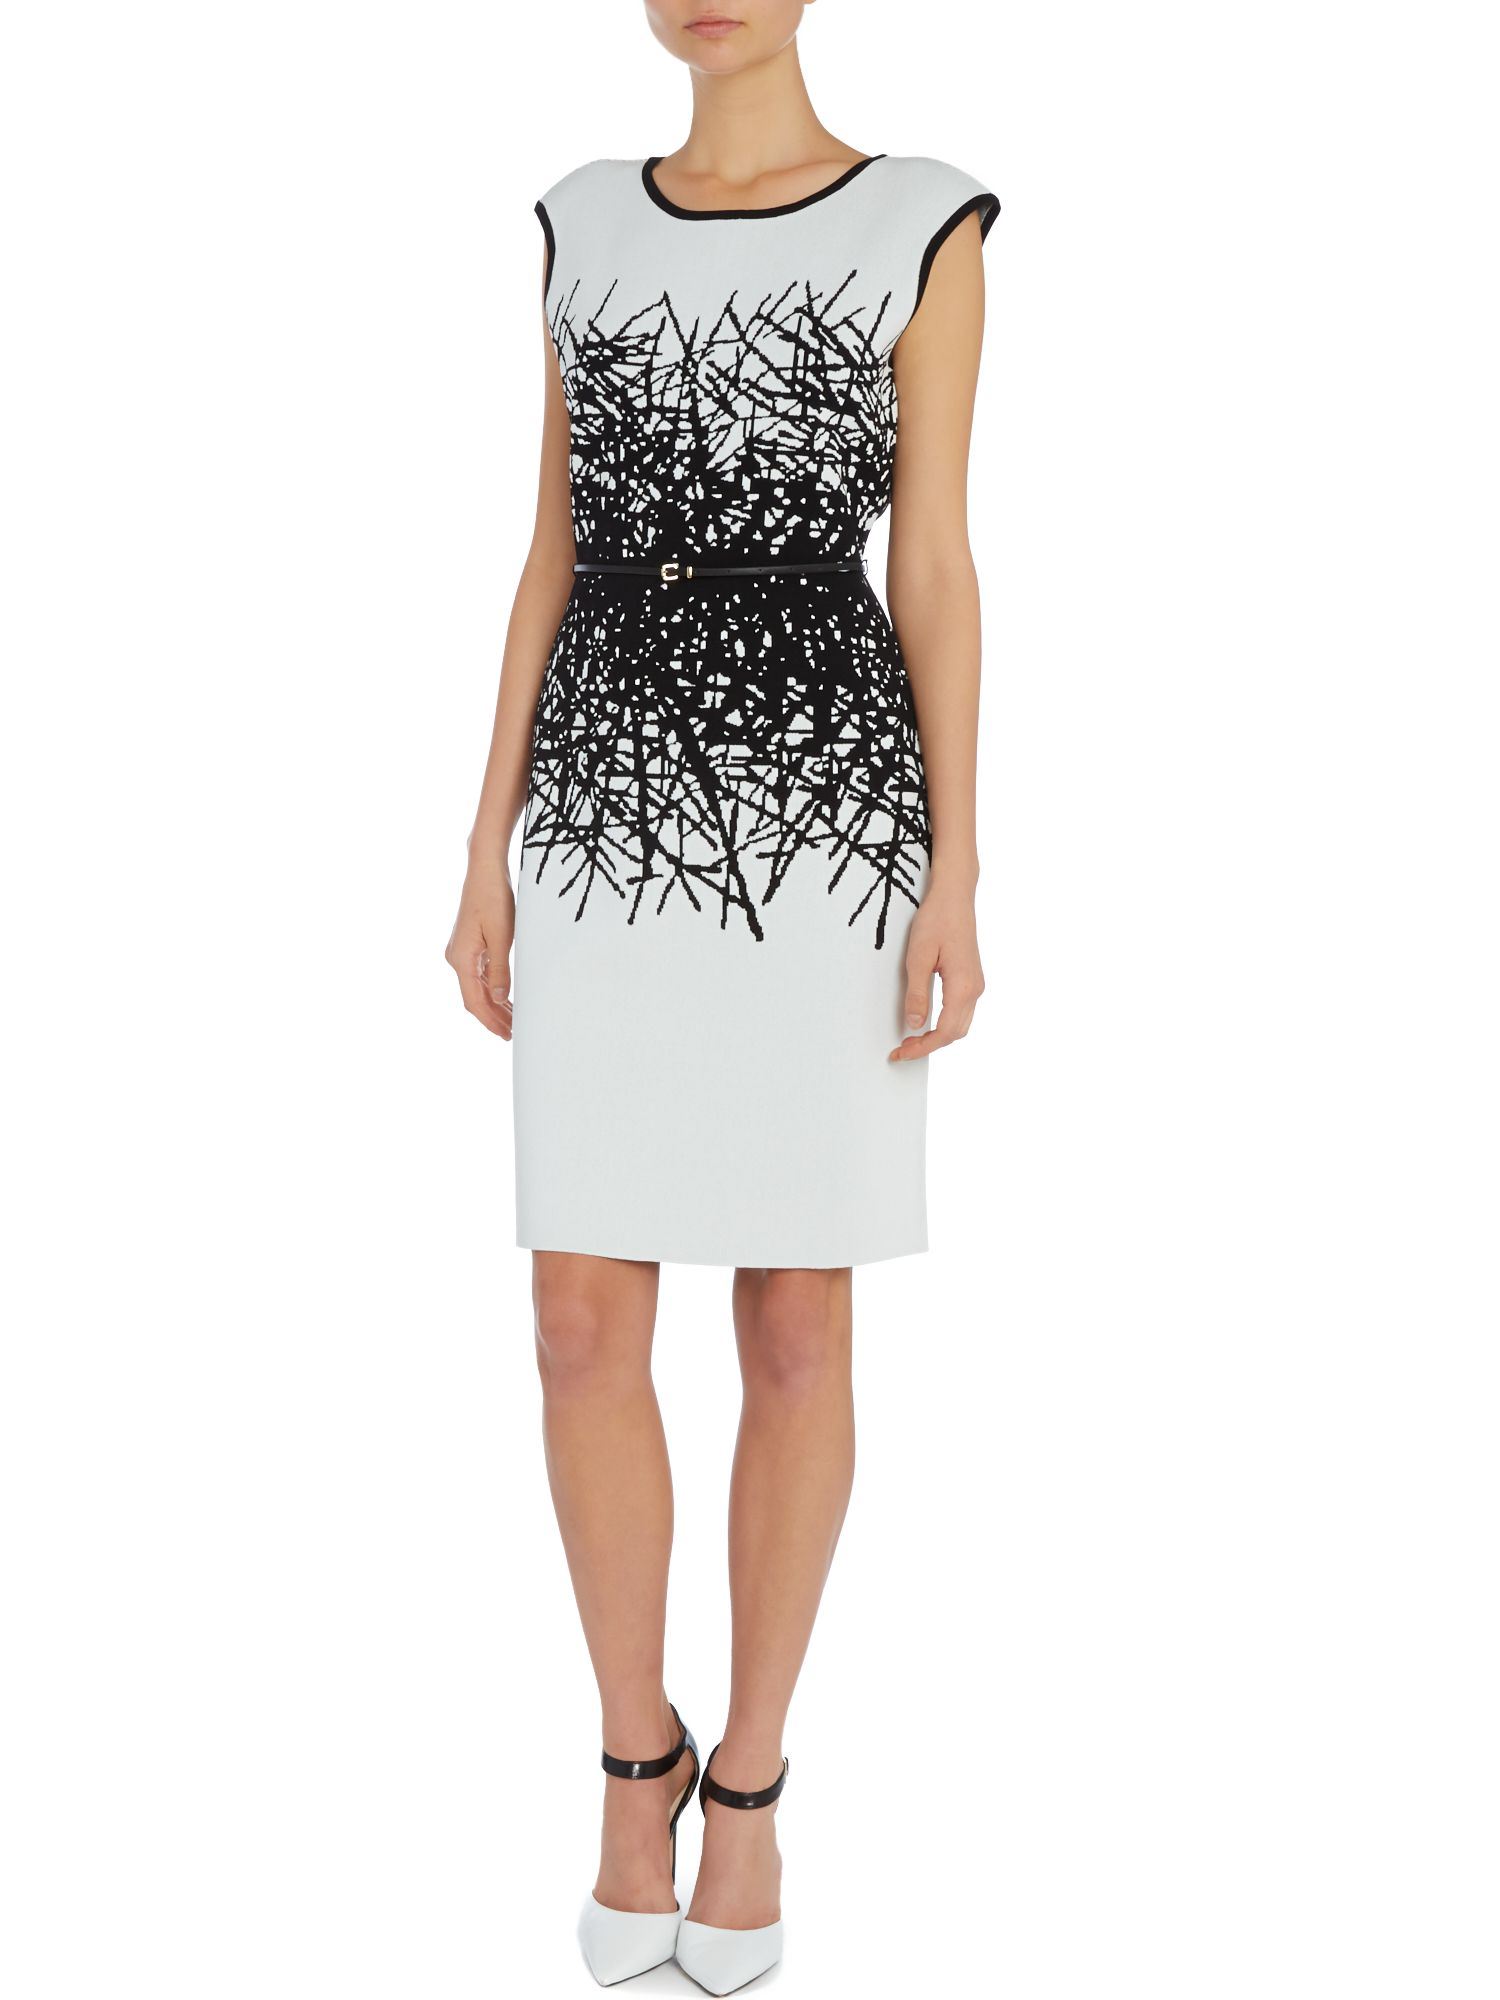 Sleeveless white dress with black print detail